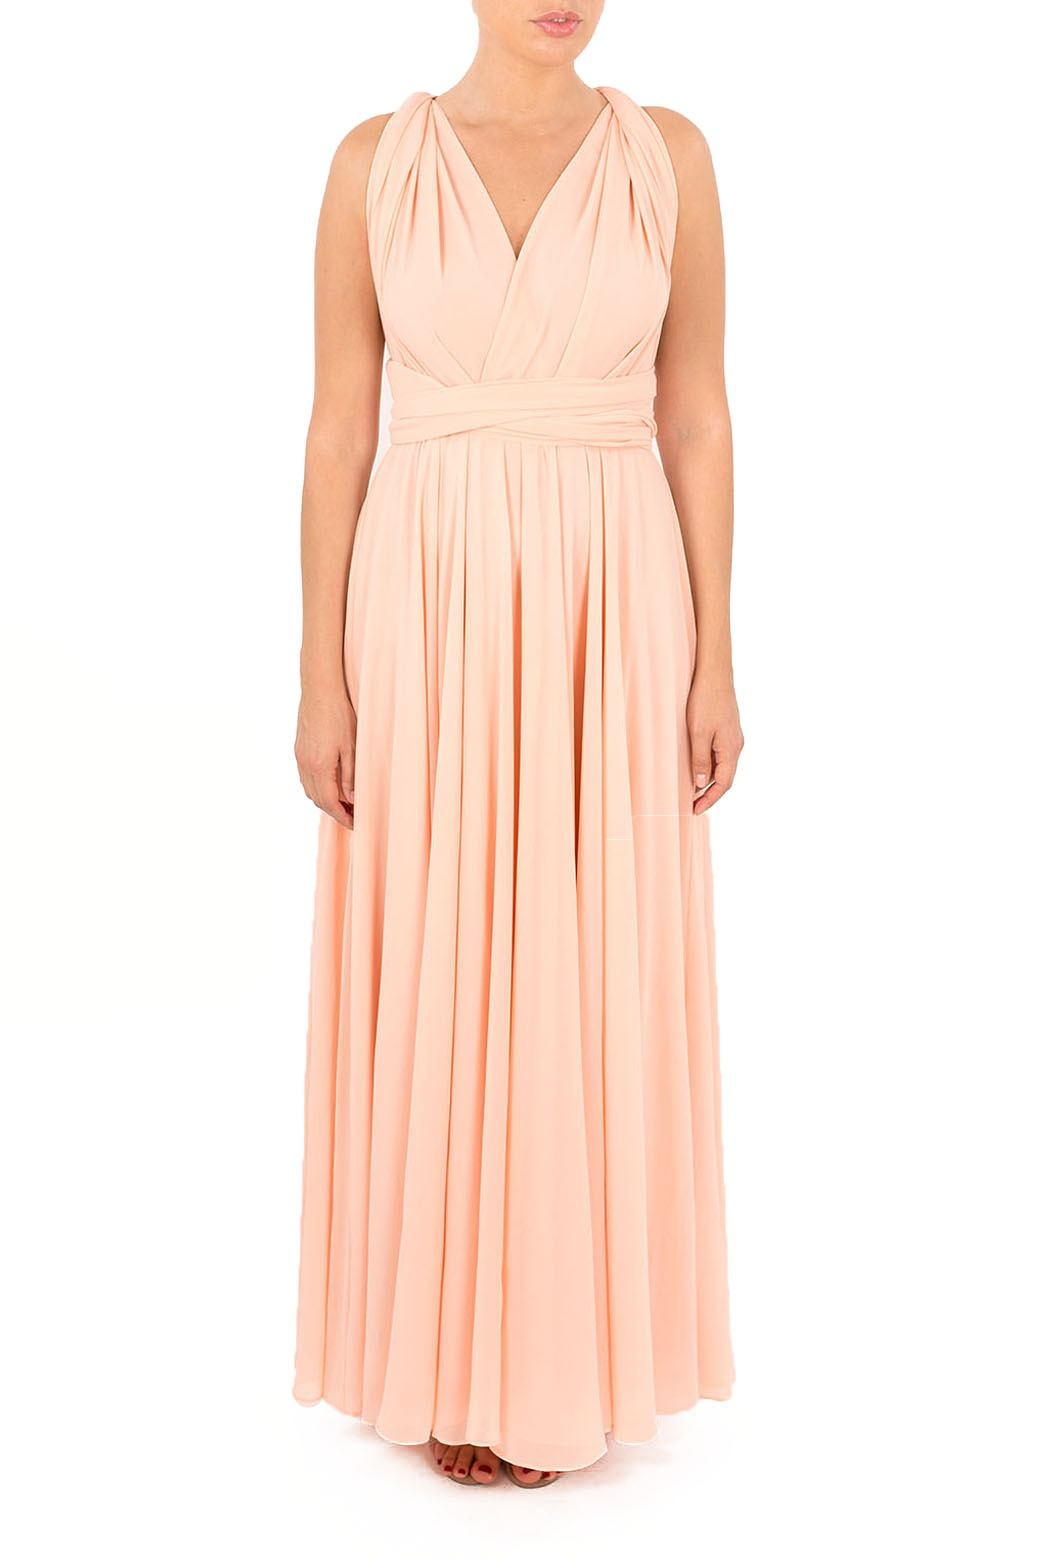 peach bridesmaid dresses in chiffon multiway maxi